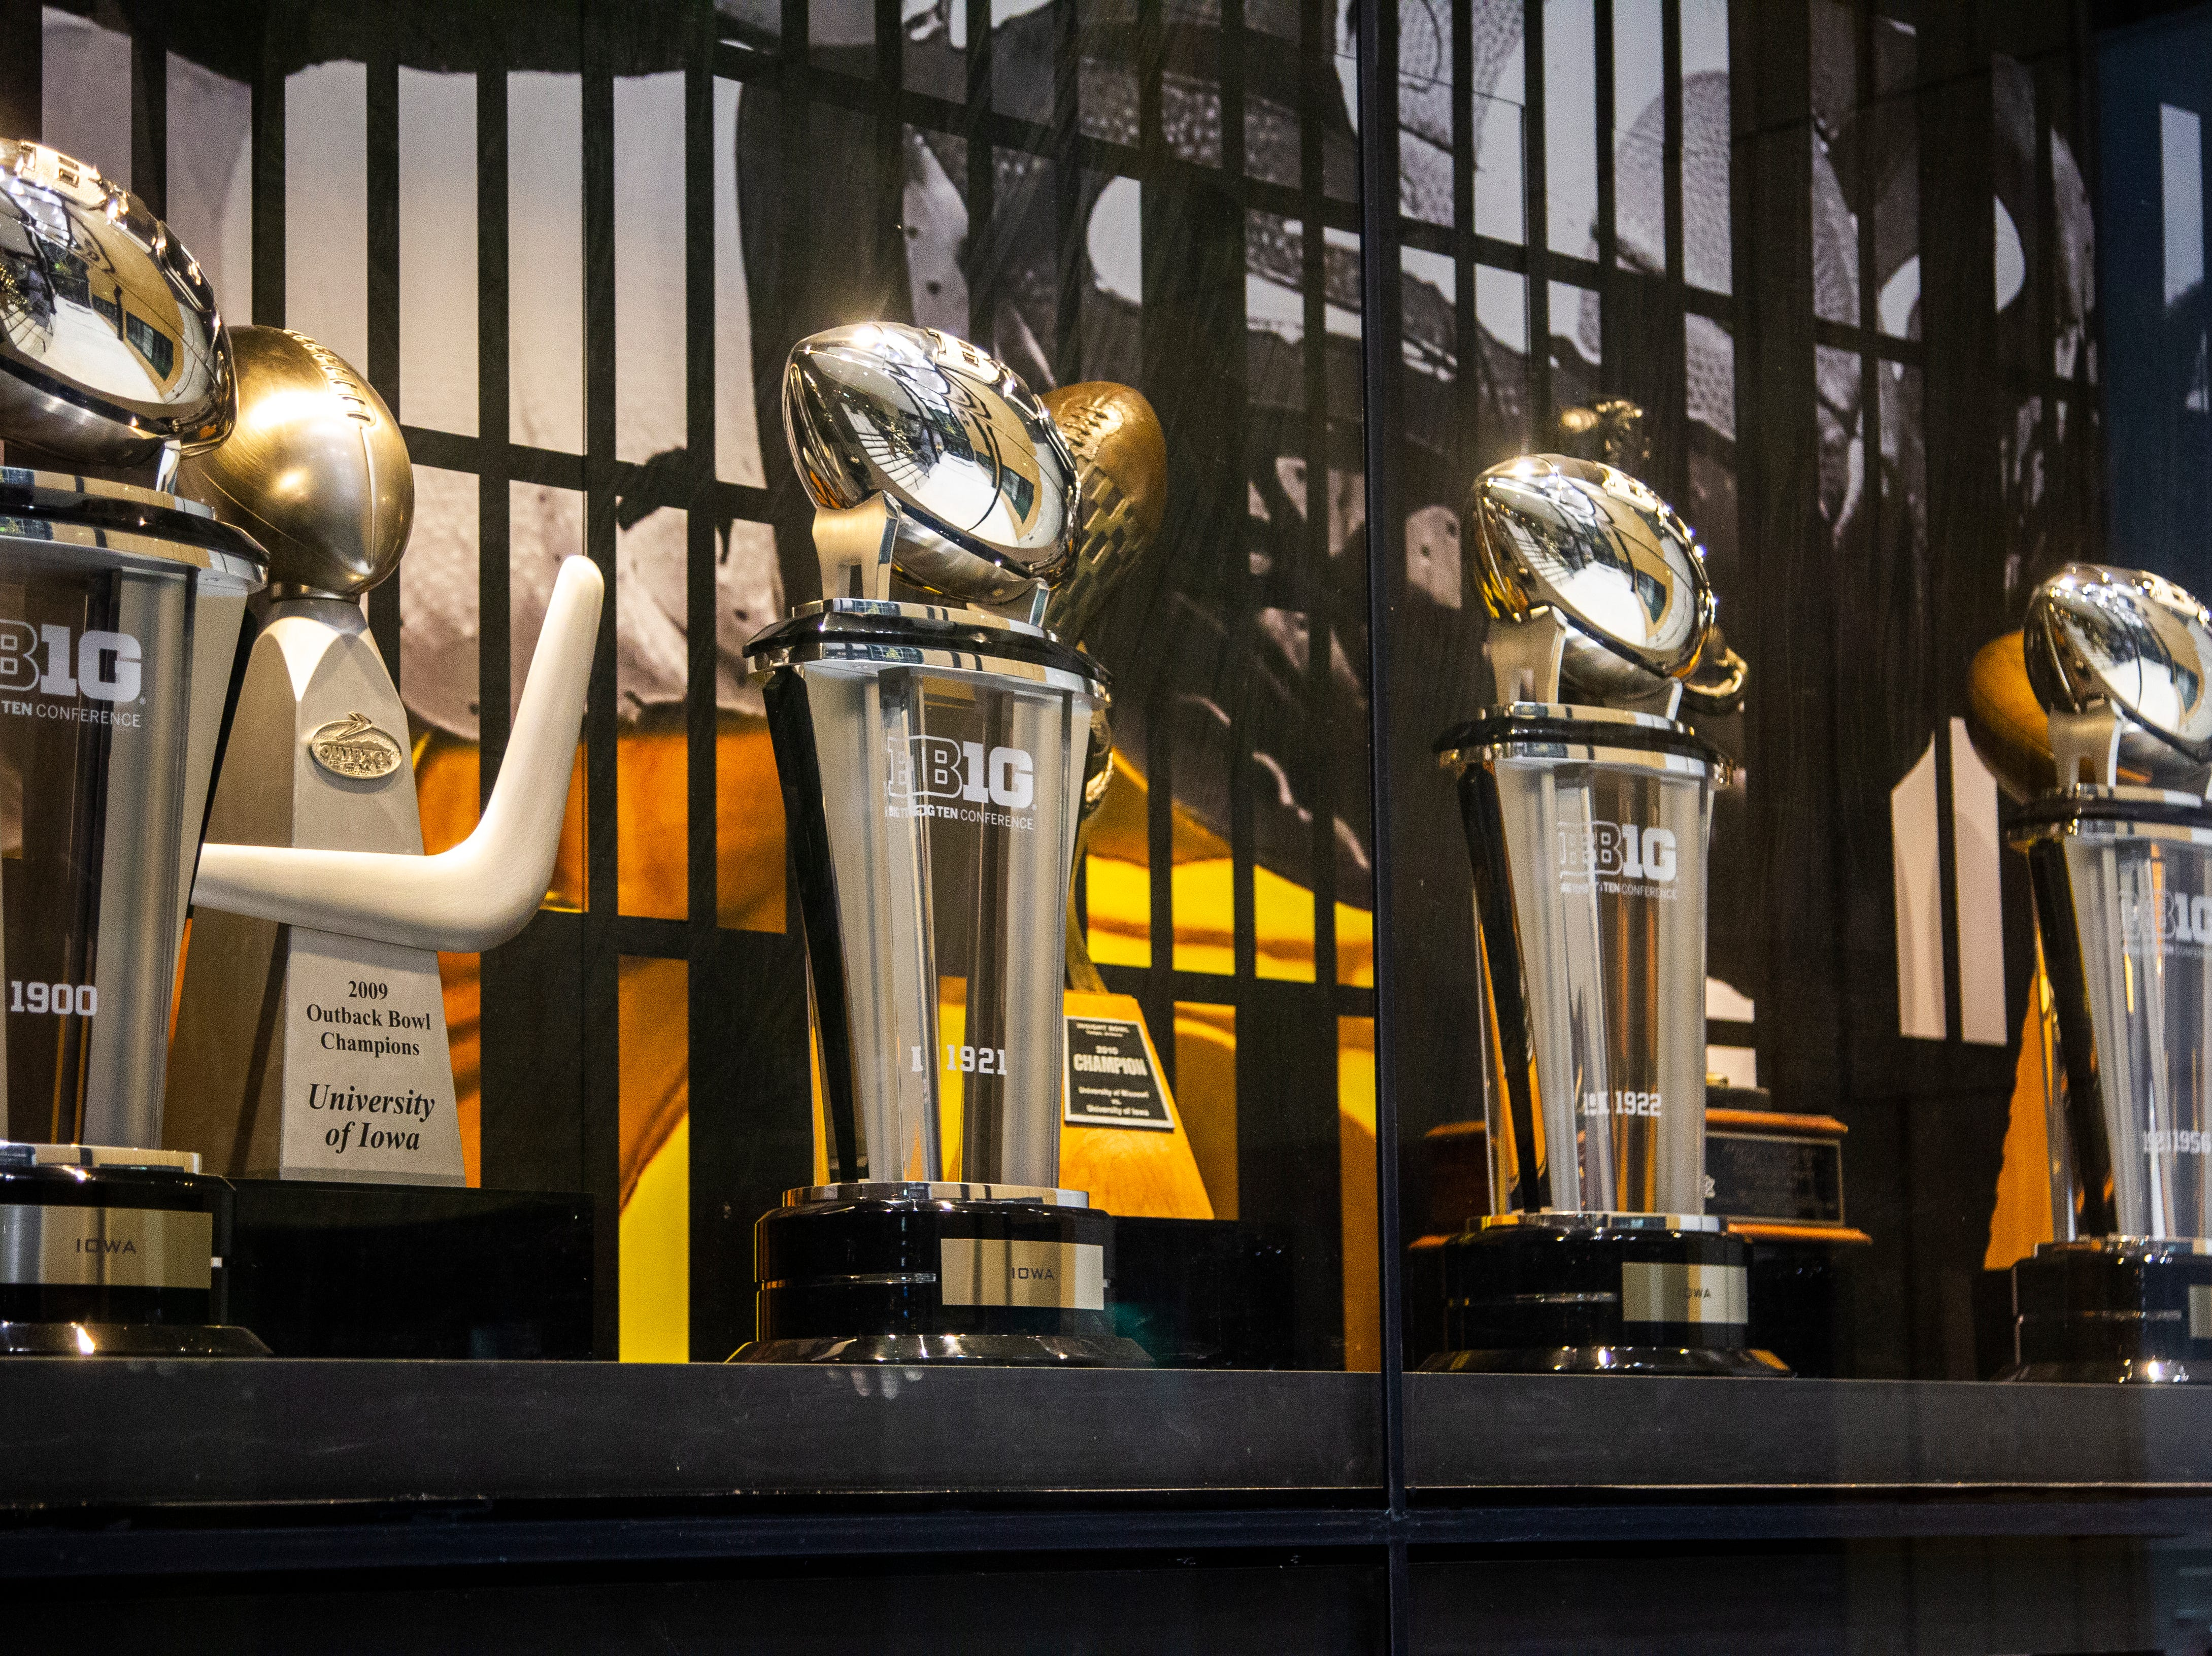 Trophies are displayed inside a case in the lobby including the 1900, 1921, 1922 and 1956 Big Ten Conference Championships, 2009 and 2004 Outback Bowl, 2010 Insight Bowl and 2005 Citrus Bowl, on Sunday, Dec. 2, 2018, at the Hansen Football Performance Center in Iowa City.